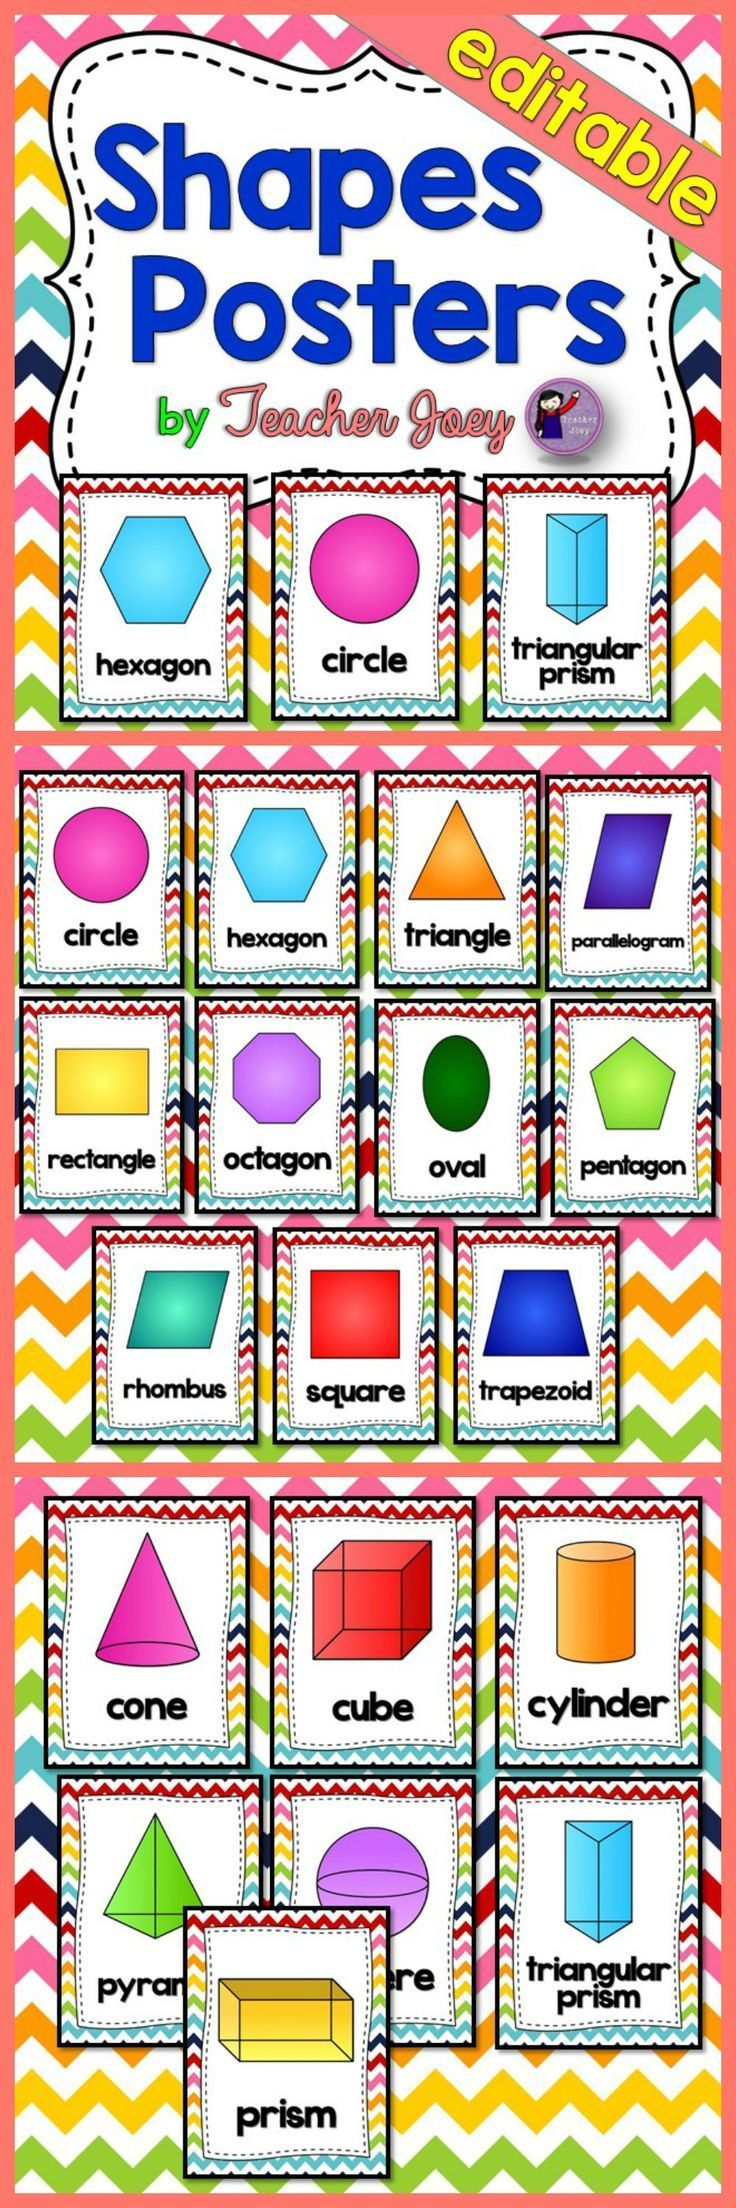 Shapes : Shapes : Shapes Rainbow Chevron Background Shapes Posters Flashcards…